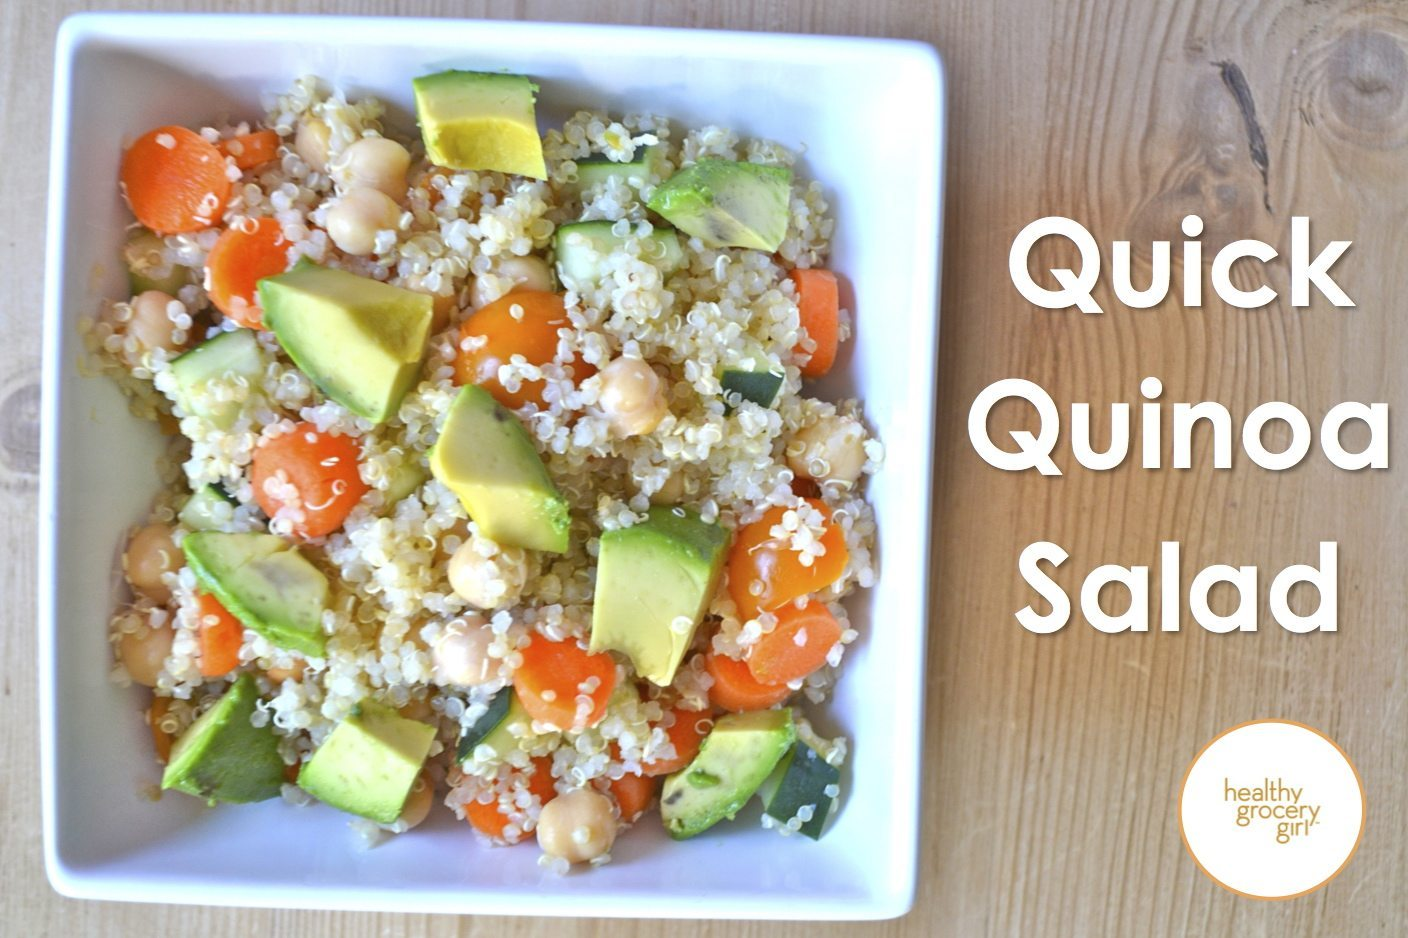 Healthy Grocery Girl | Quick Quinoa Salad